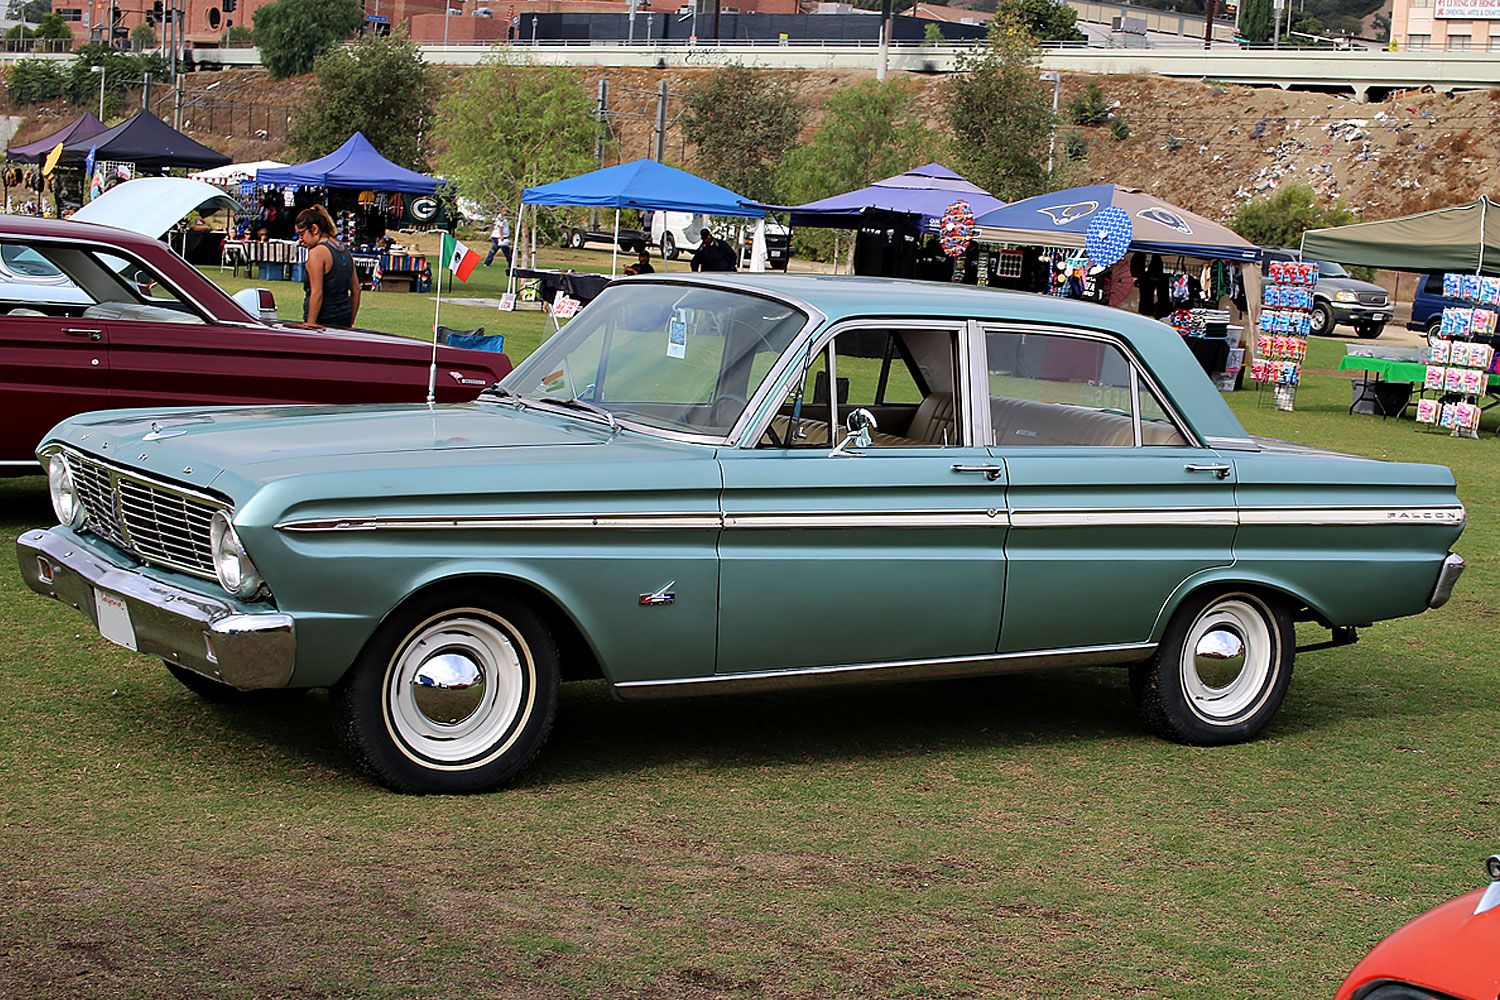 so-cal-falcons-classics-in-the-park-2018-65bbq-11.jpg